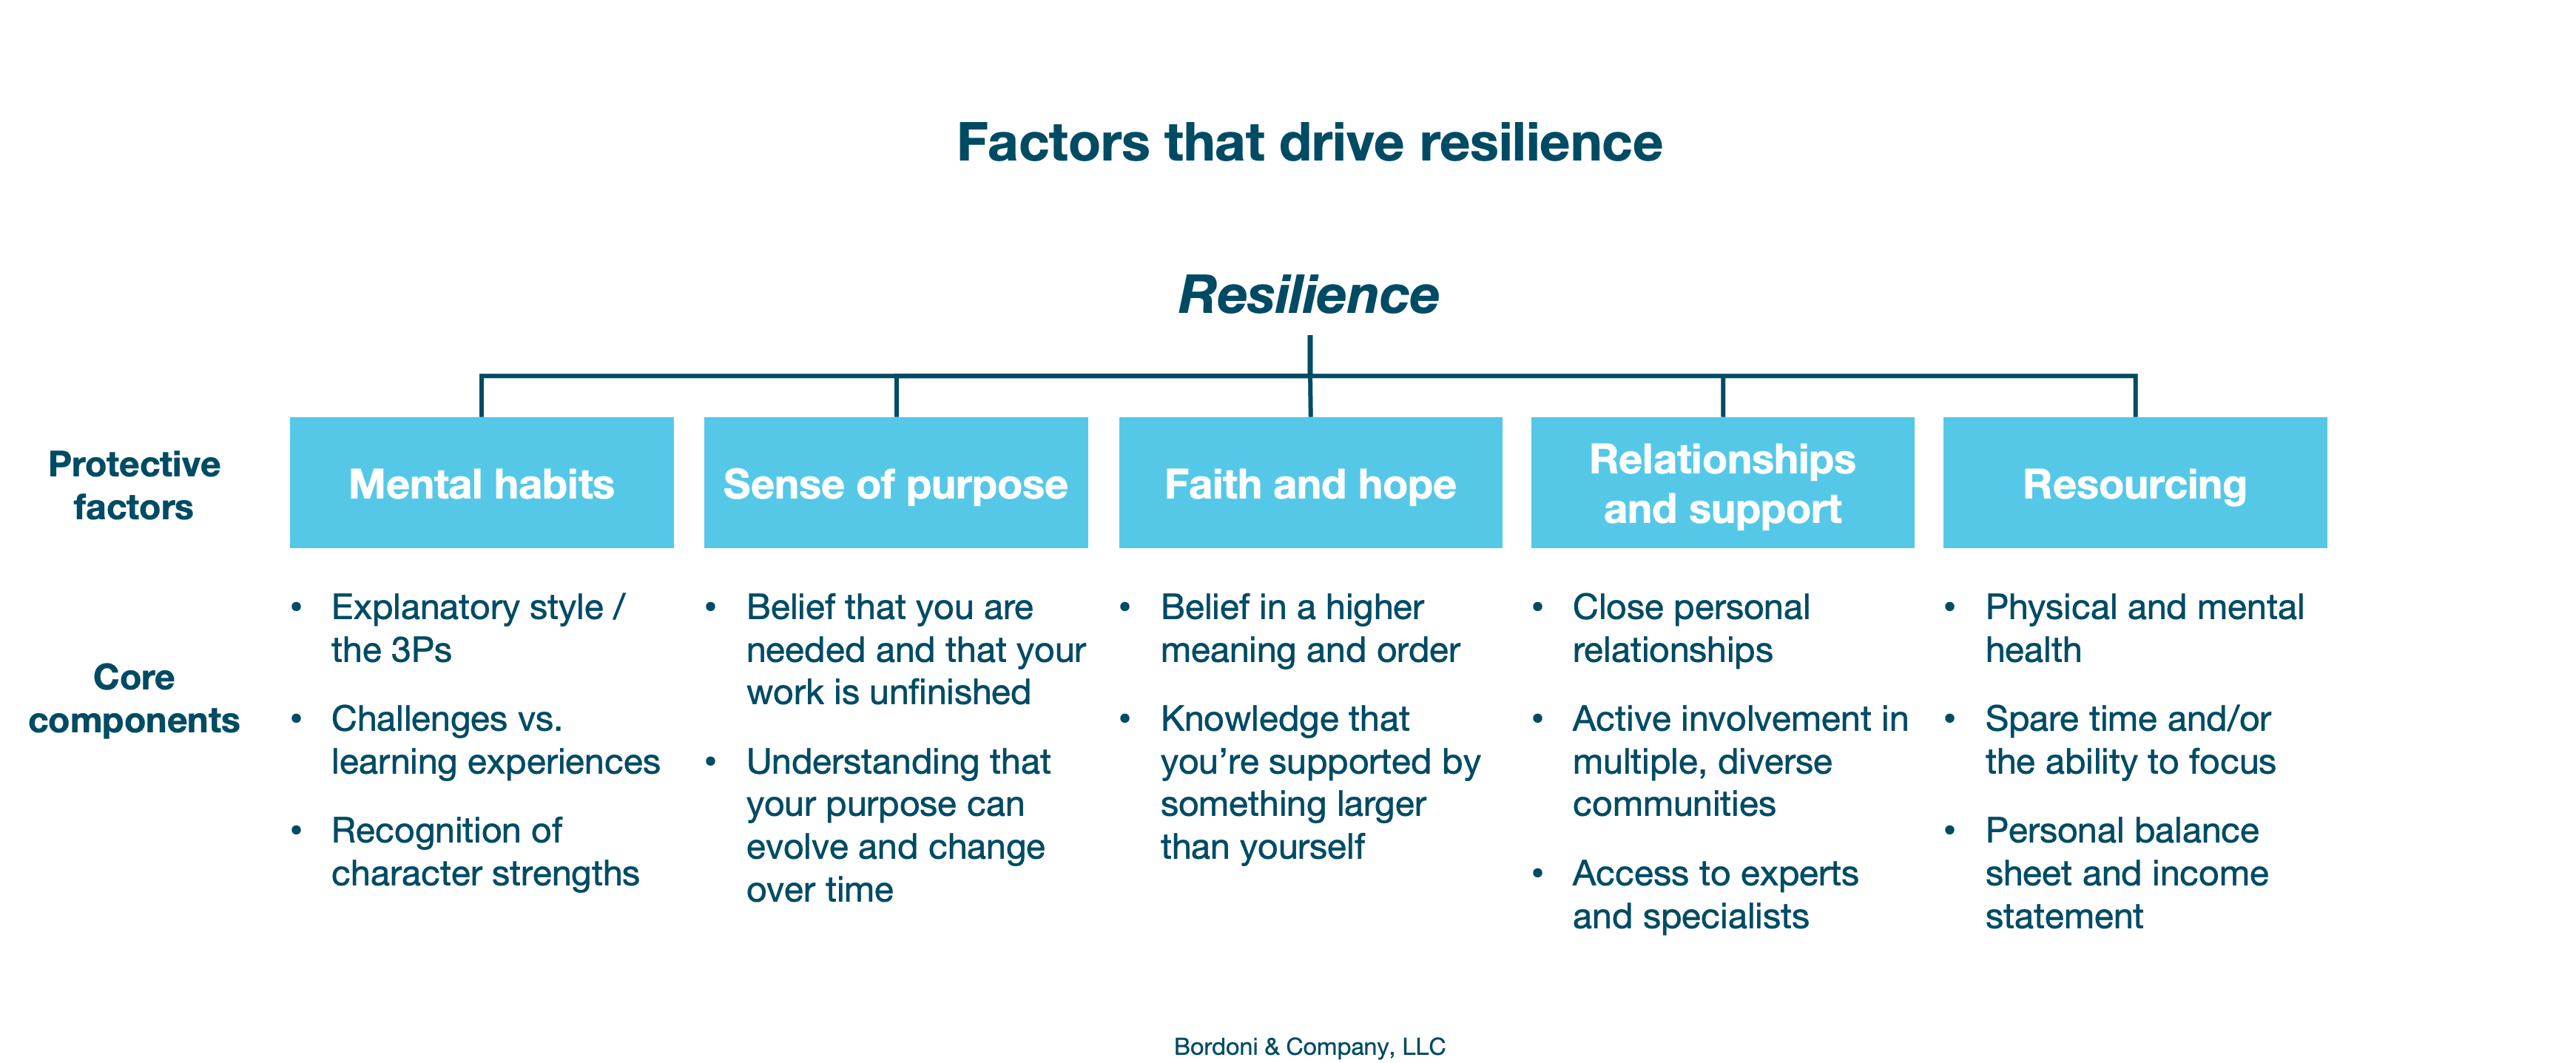 Factors that drive resilience | Bordoni & Company